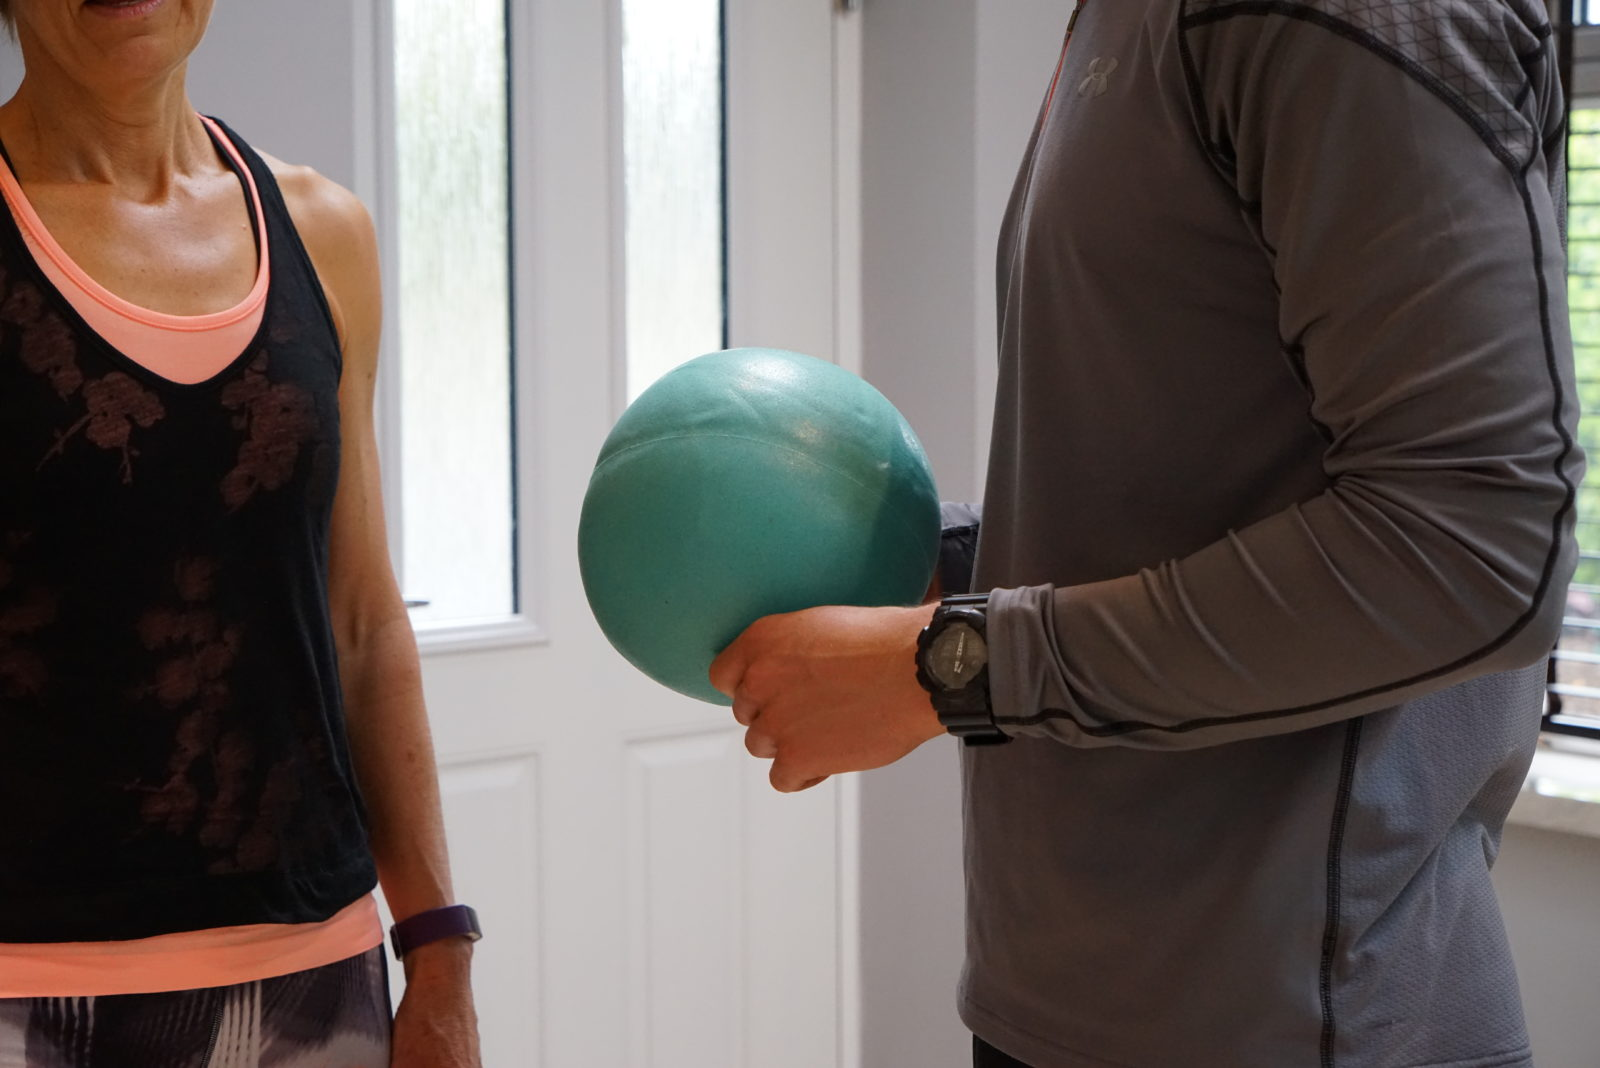 Photo of training equipment being used by a client - www.futurehealthtraining.co.uk